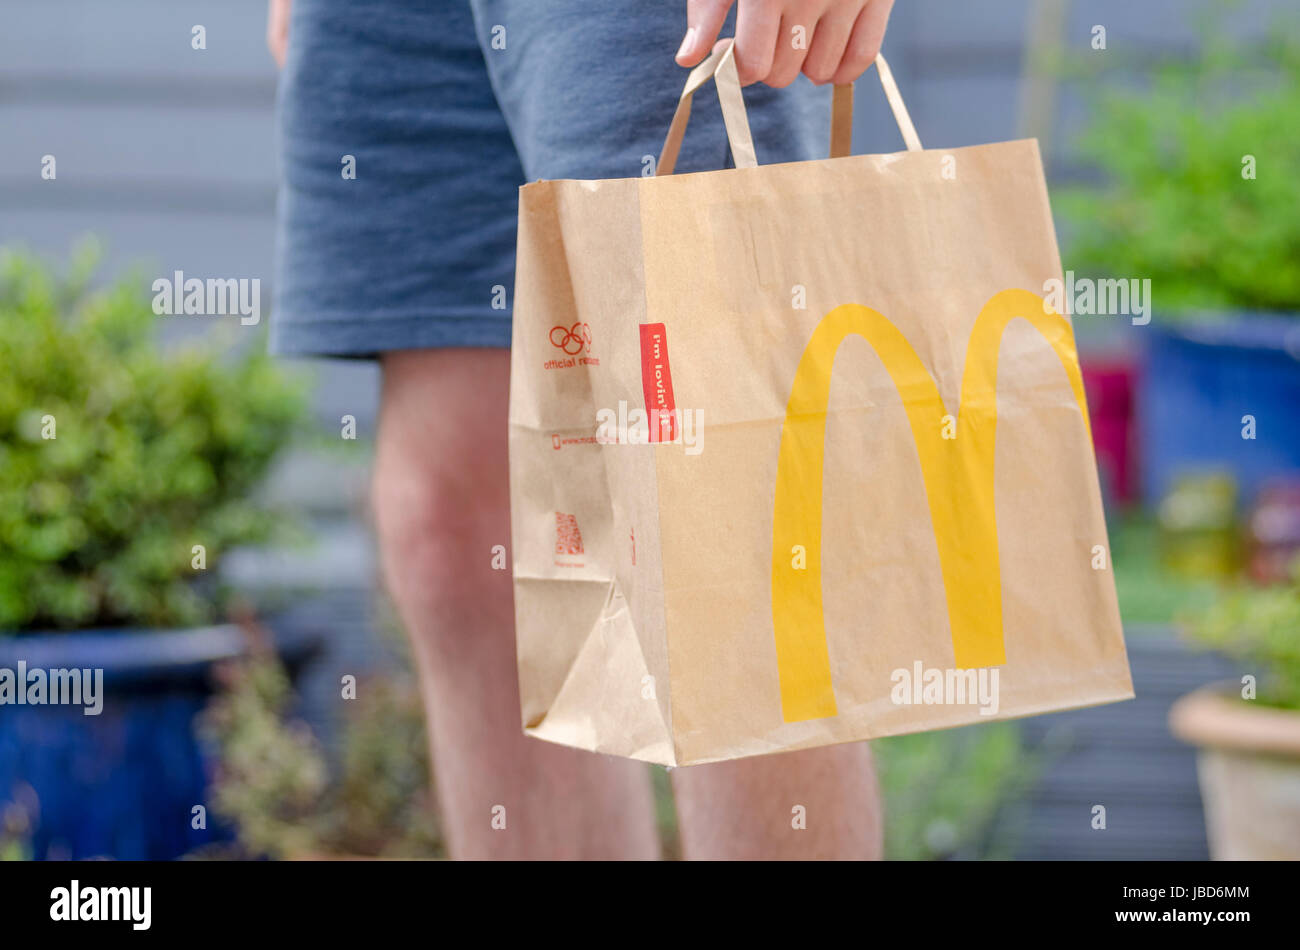 Close up of a McDonald's Take Away Food Brown Paper Bag,  McDonald's is a fast food restaurant chain founded - Stock Image